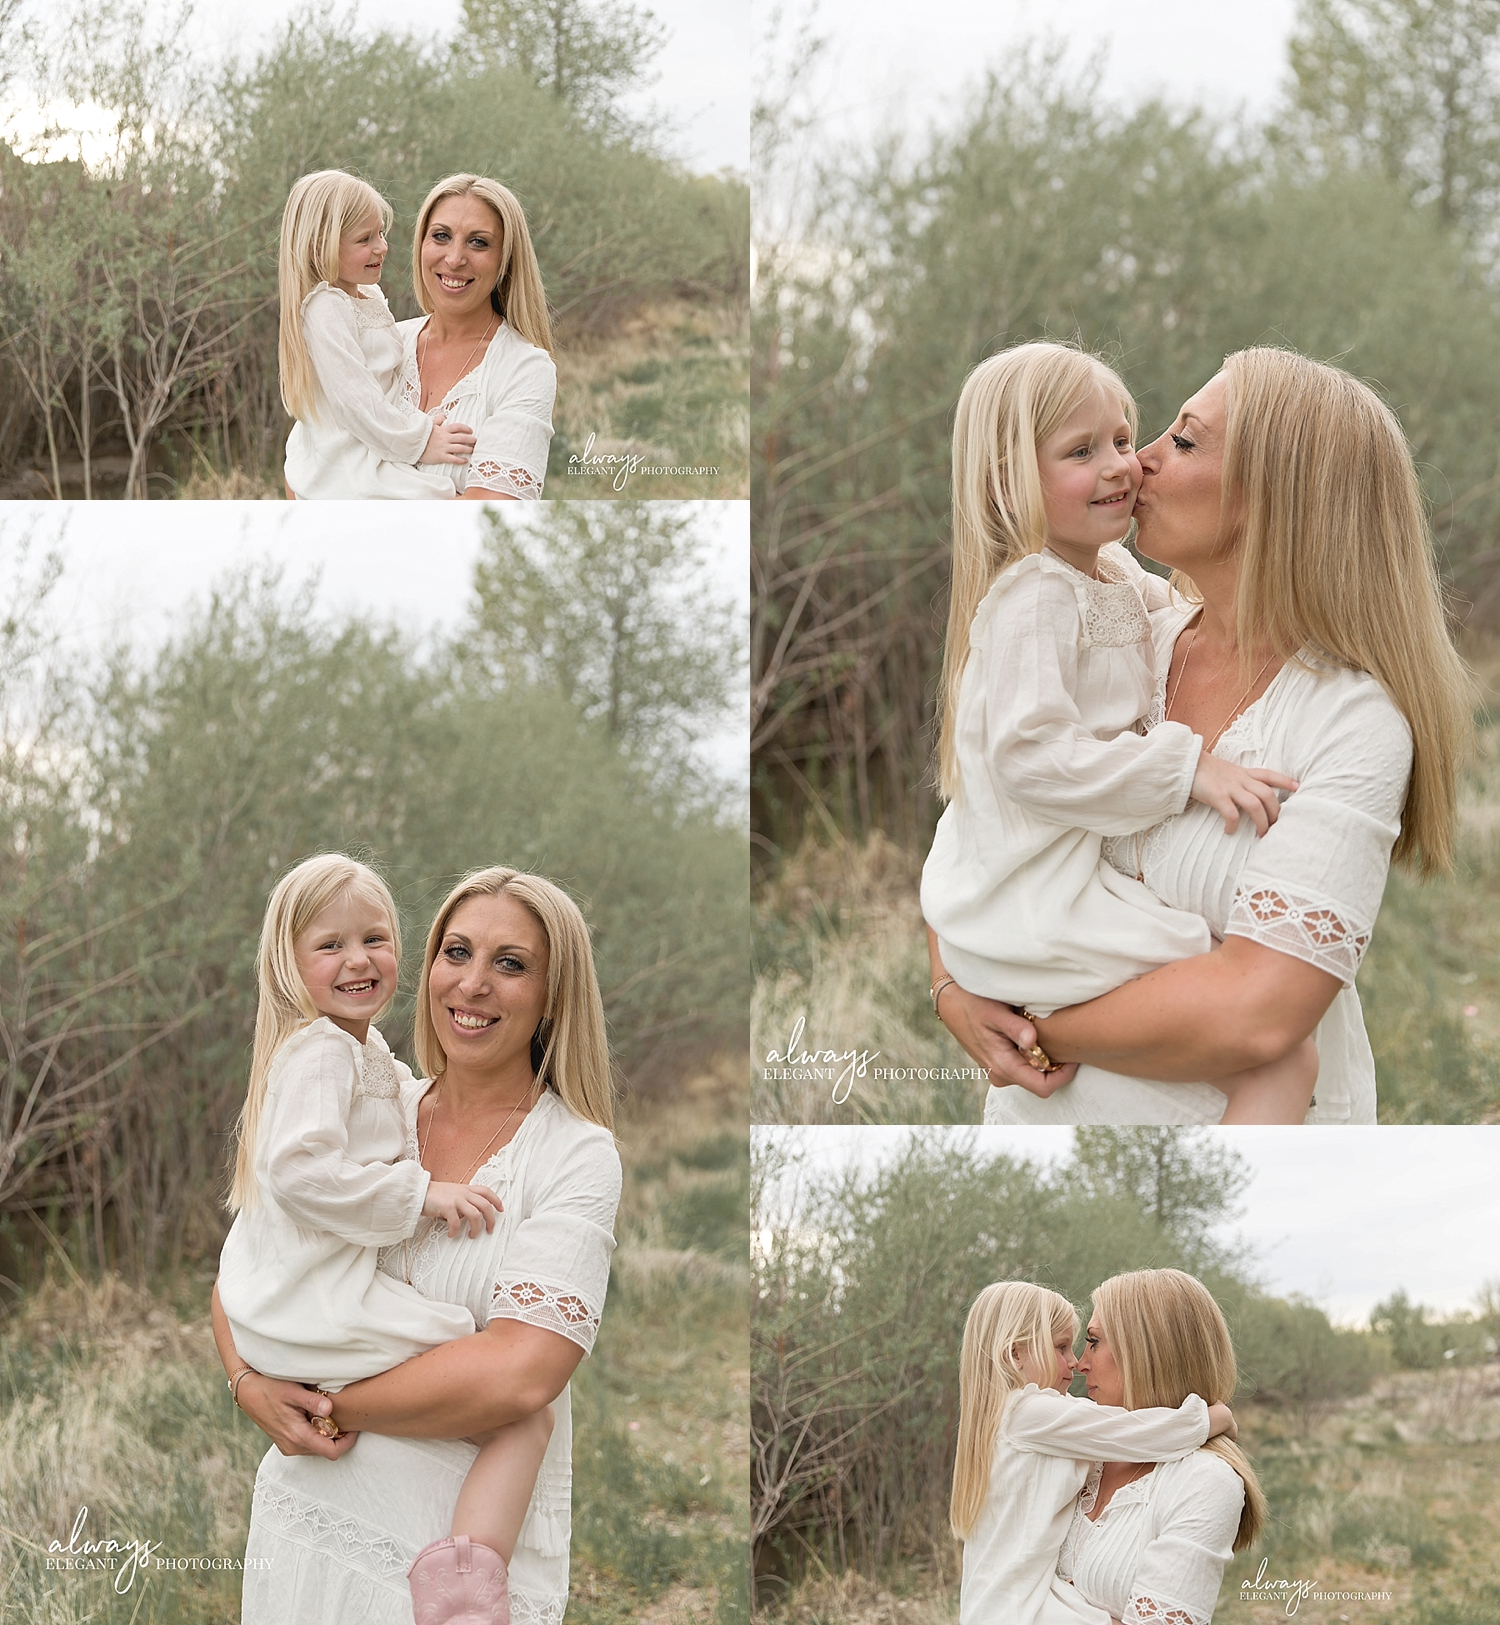 A_Motherhood_Event_Mommy_And_Me_Mini_Session_0013.jpg